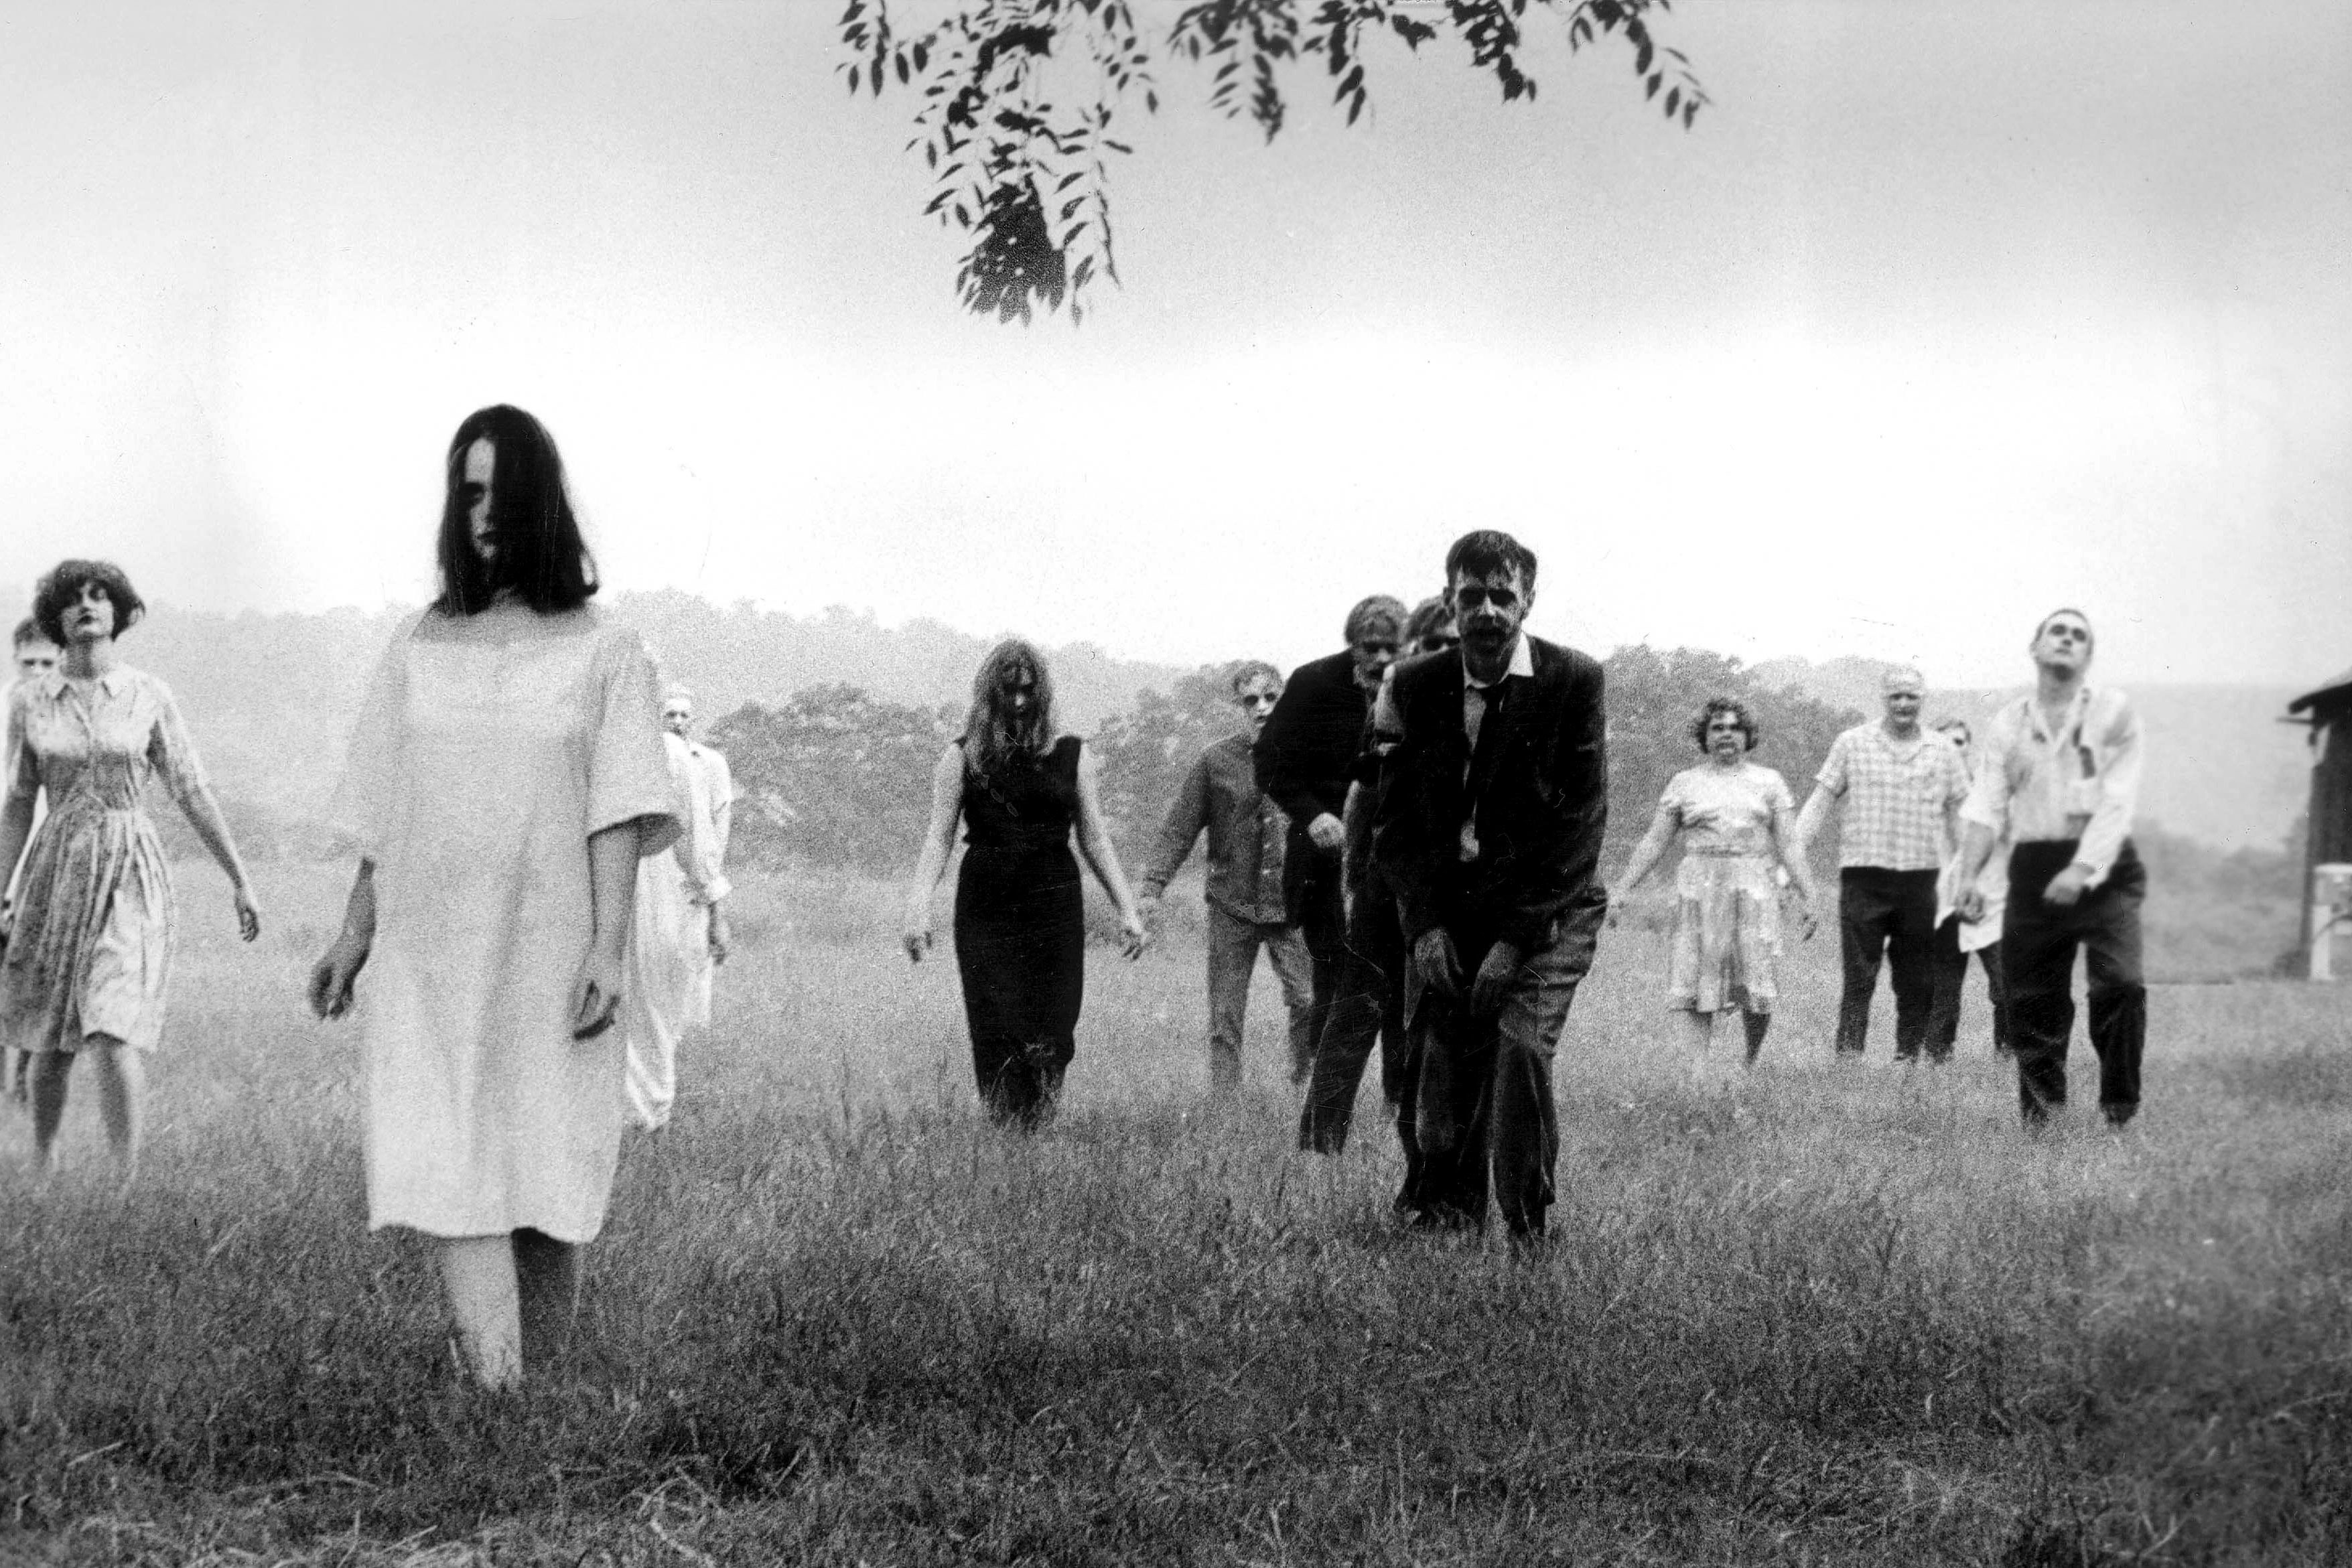 Editorial use only. No book cover usage.Mandatory Credit: Photo by Image Ten/Kobal/REX/Shutterstock (5881773o)Night Of The Living Dead (1968)Night Of The Living Dead - 1968Director: George A. RomeroImage TenUSAScene StillLa Nuit des morts-vivants (1968)